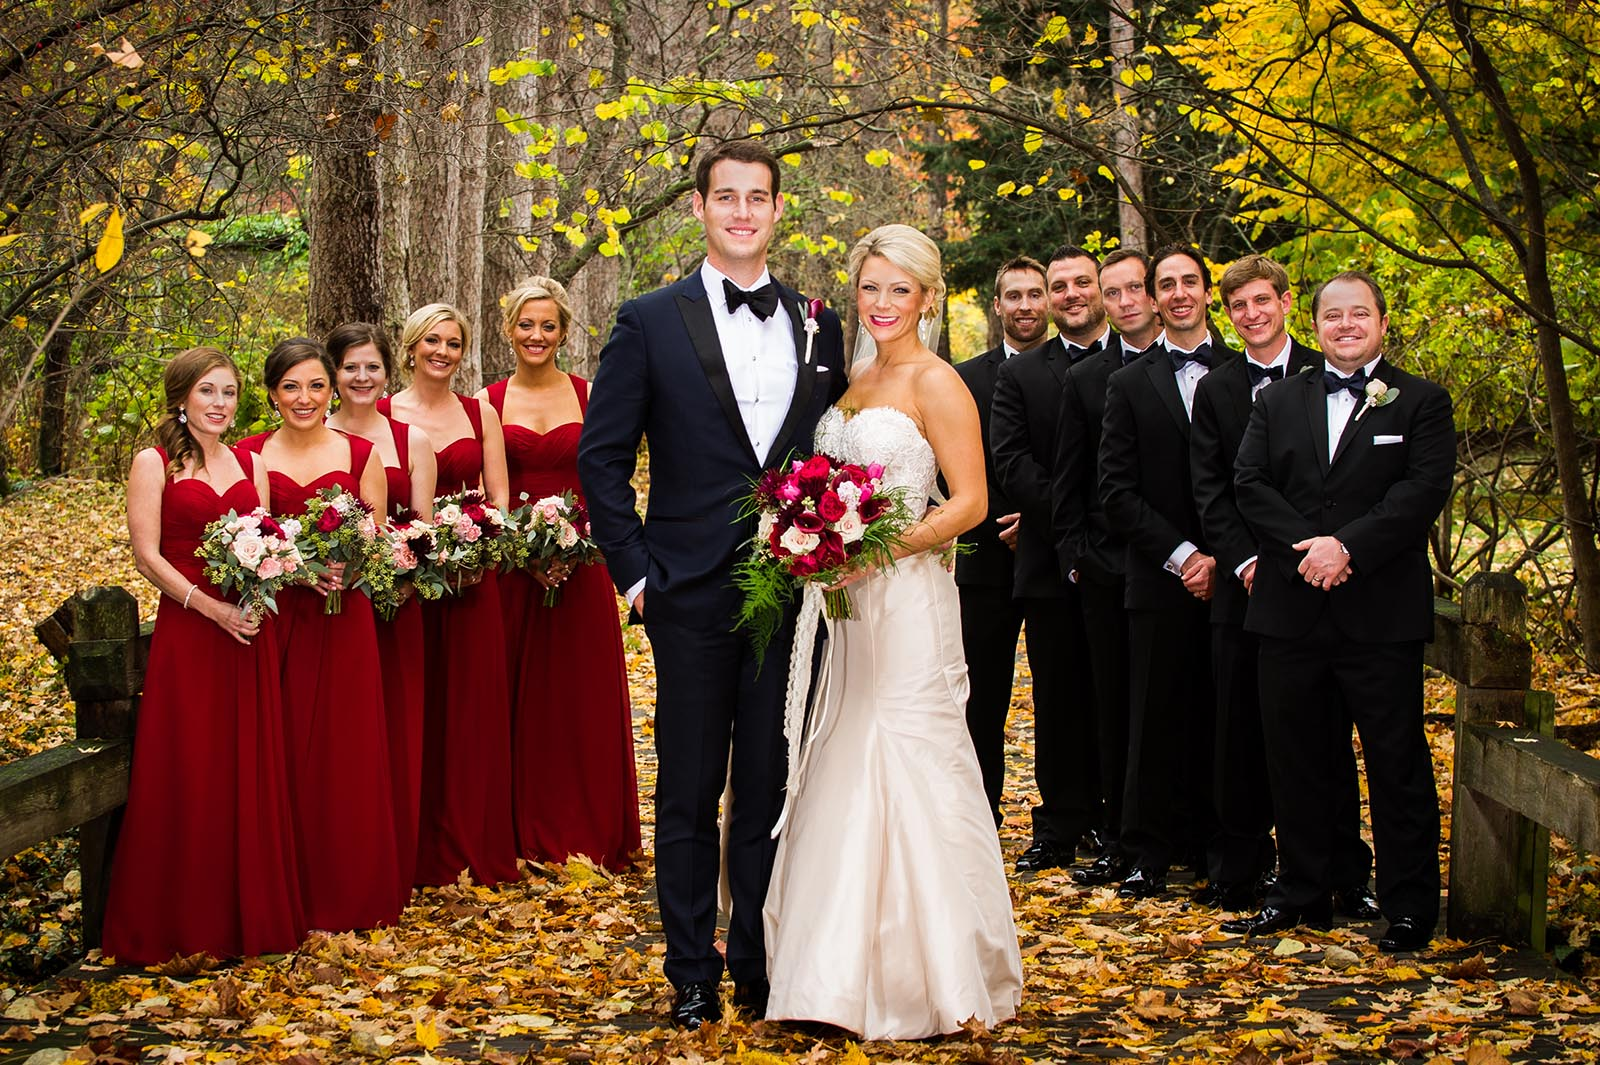 Bridal Party at Fall Wedding in Forest